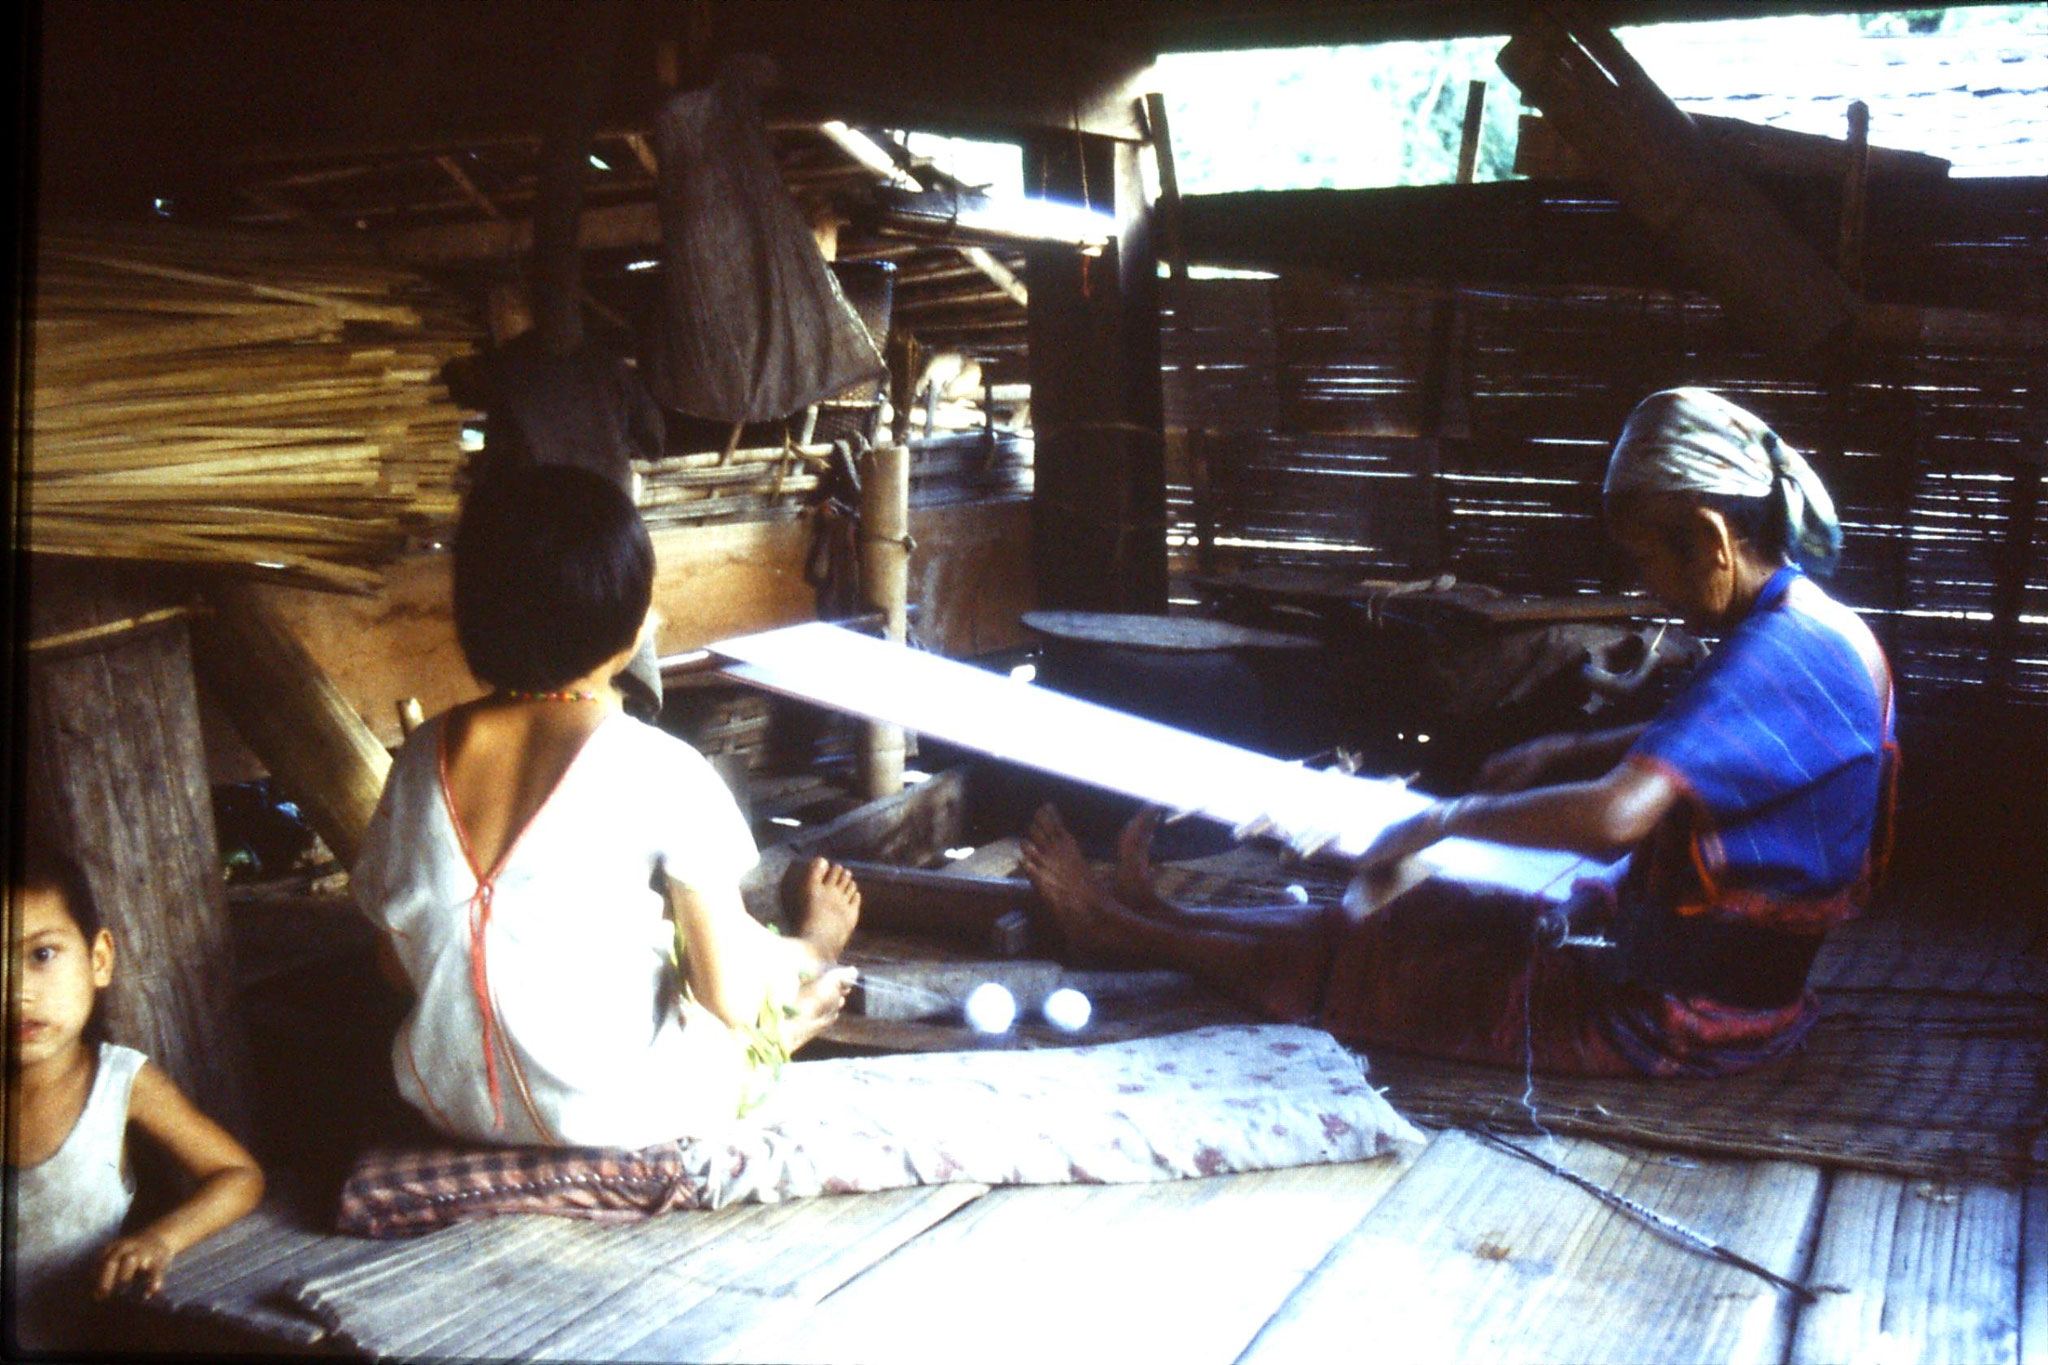 12/6/1990: 34: Trek - Hue Kom Karen village weaving